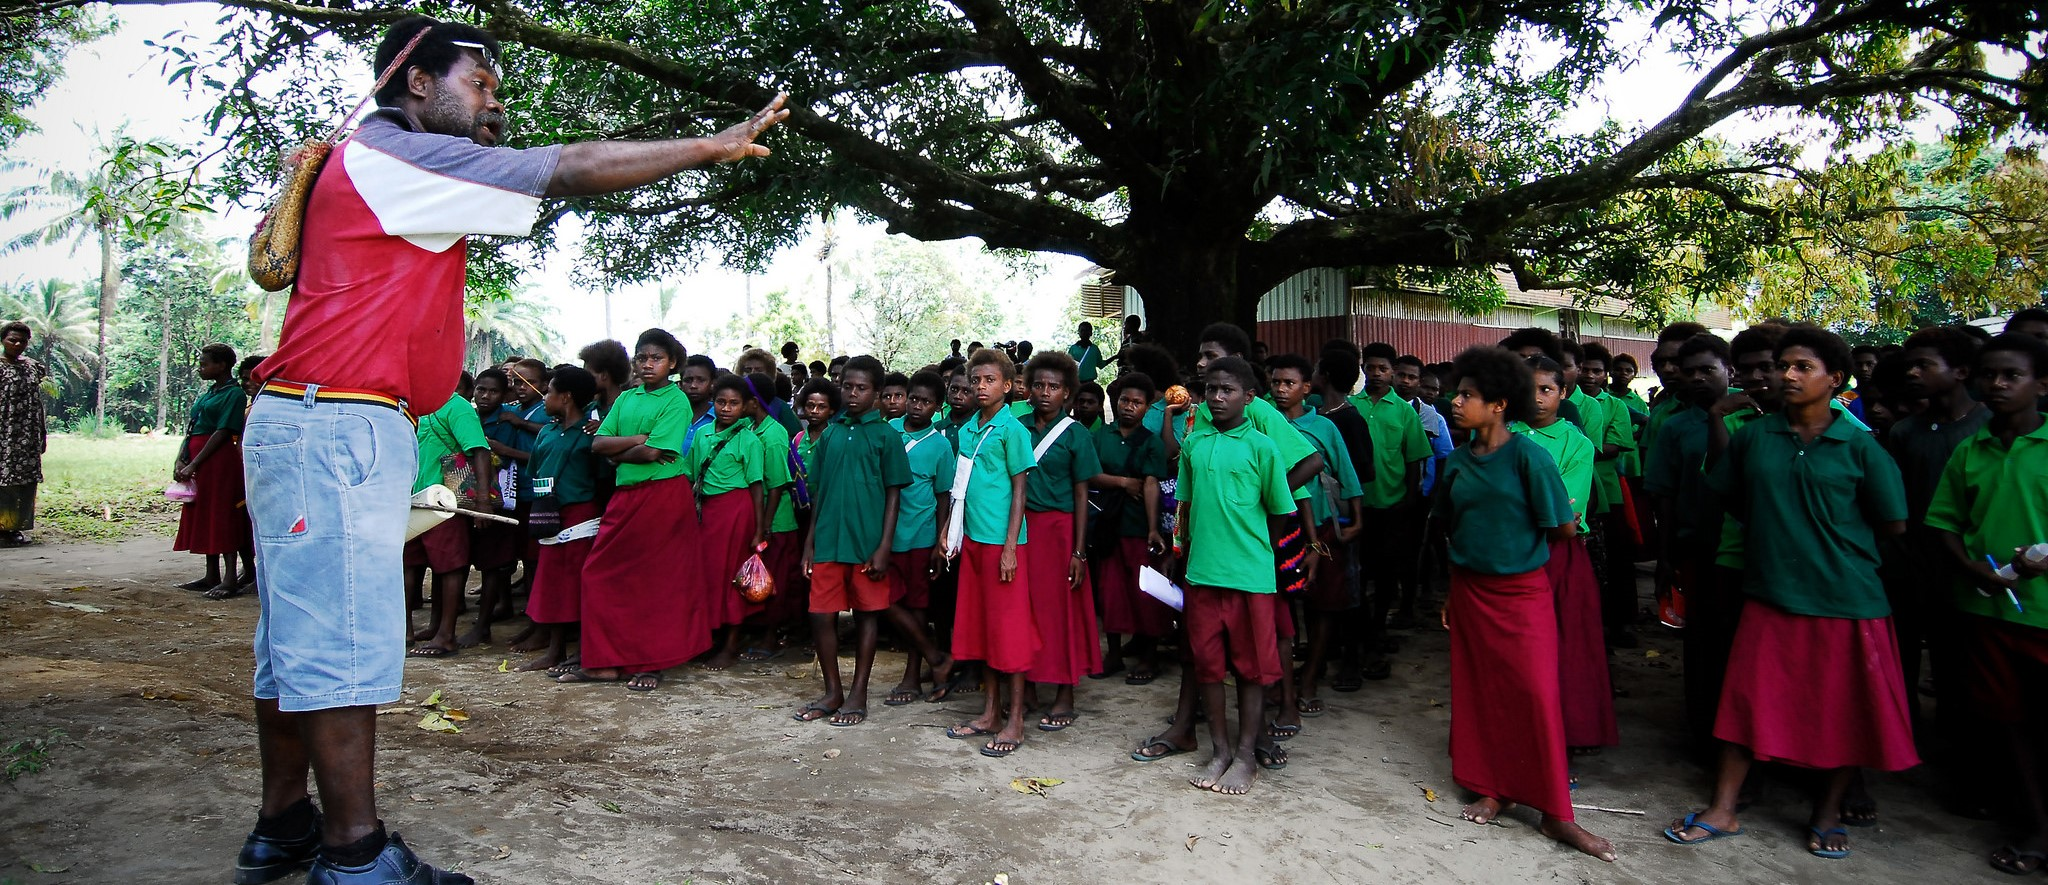 Education in Papua New Guinea (Photo: Flickr/Asian Development Bank)